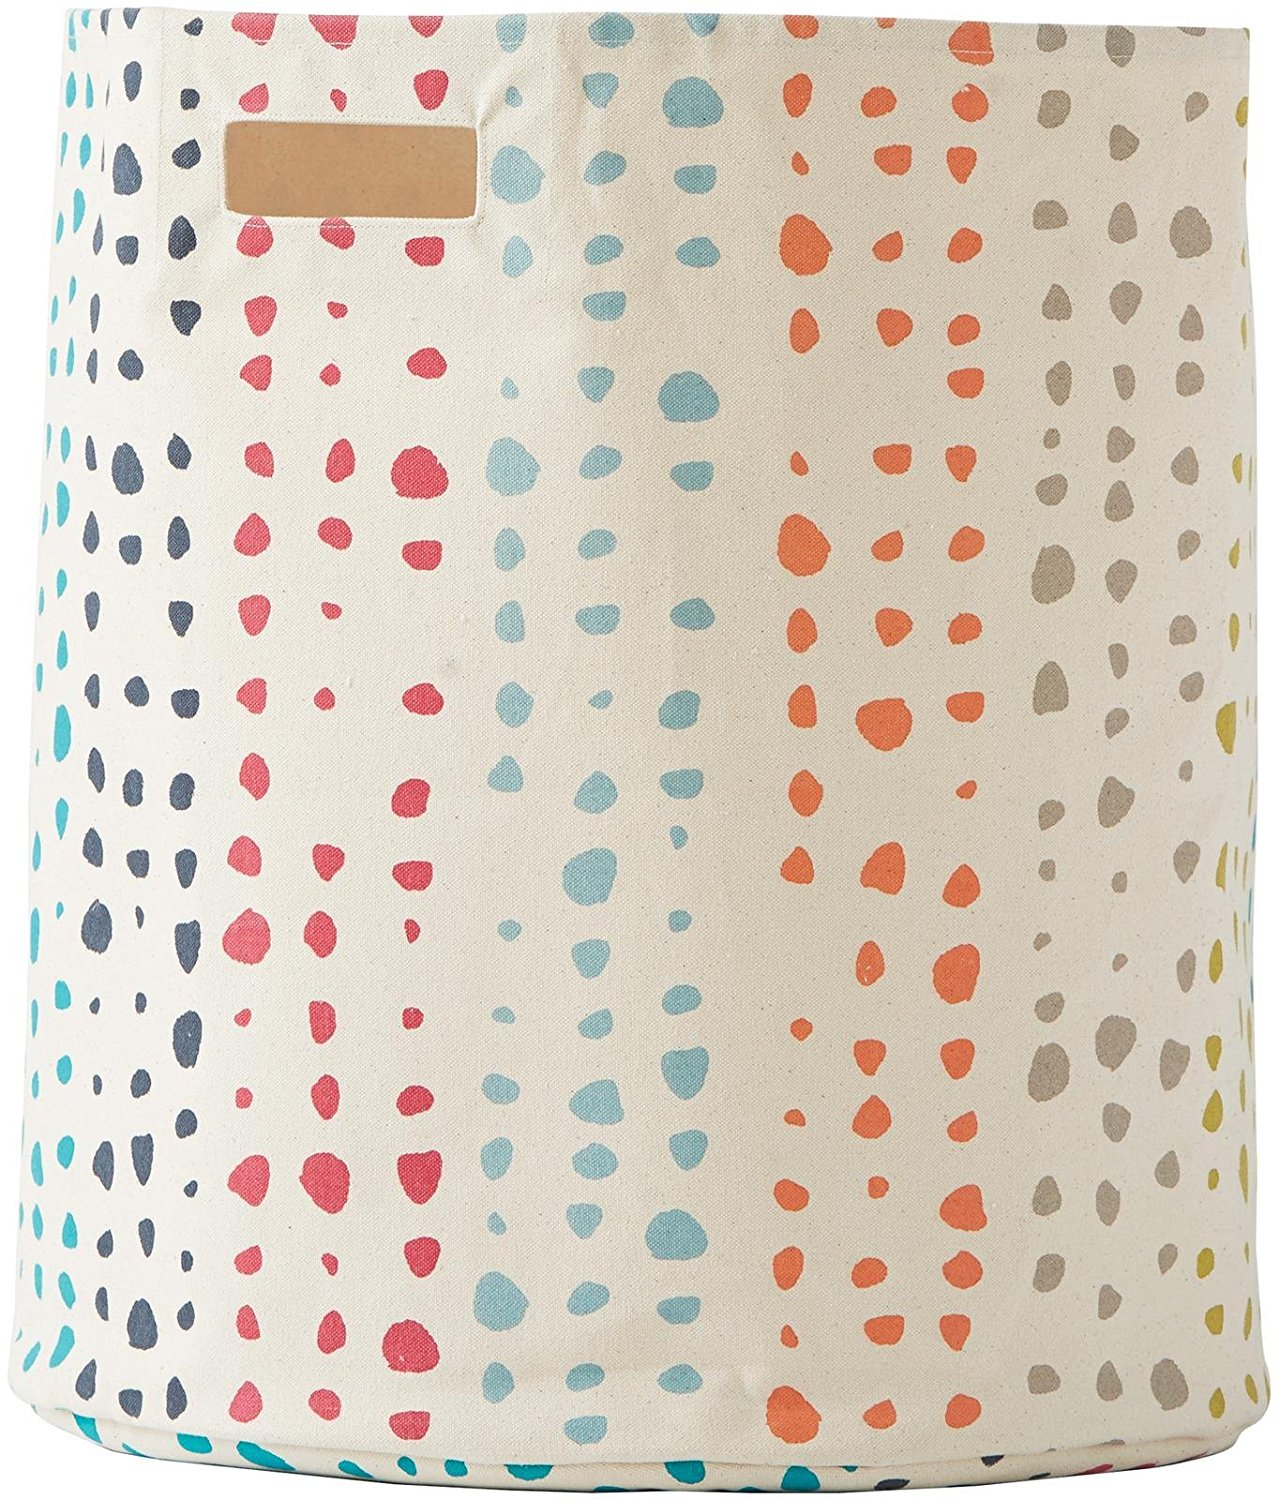 pehr designs painted dots hamper, polka dot hamper, rainbow hamper, cute hamper, kids laundry hamper, baby laundry hampers, best laundry hampers for nursery, laundry hampers for nursery, best nursery hampers, nursery hampers